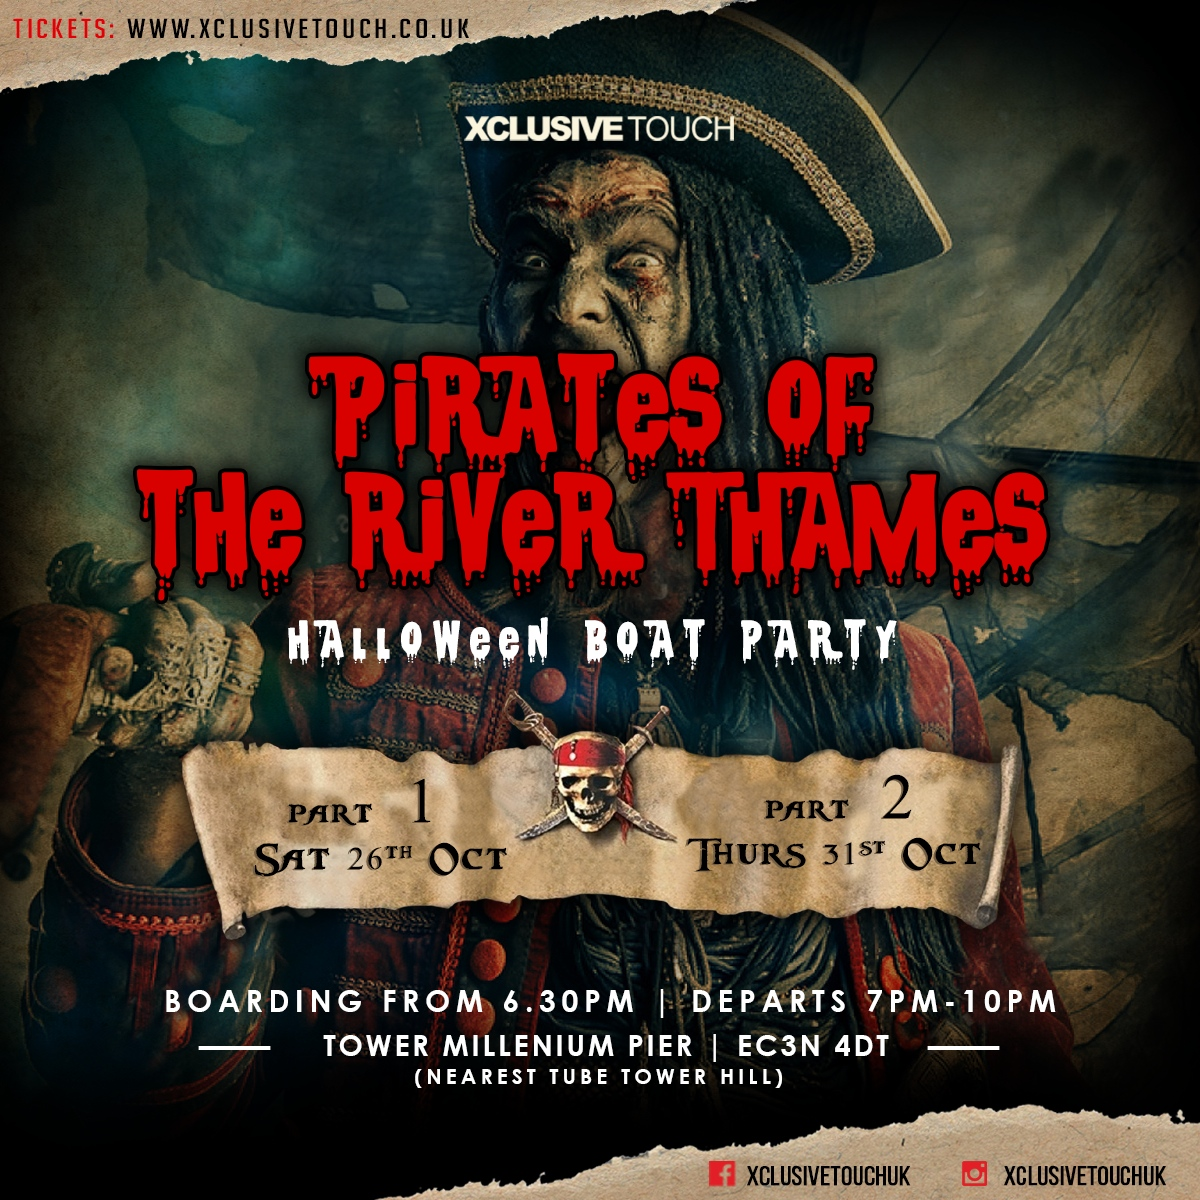 Pirates of the River Thames | Halloween Boat Party